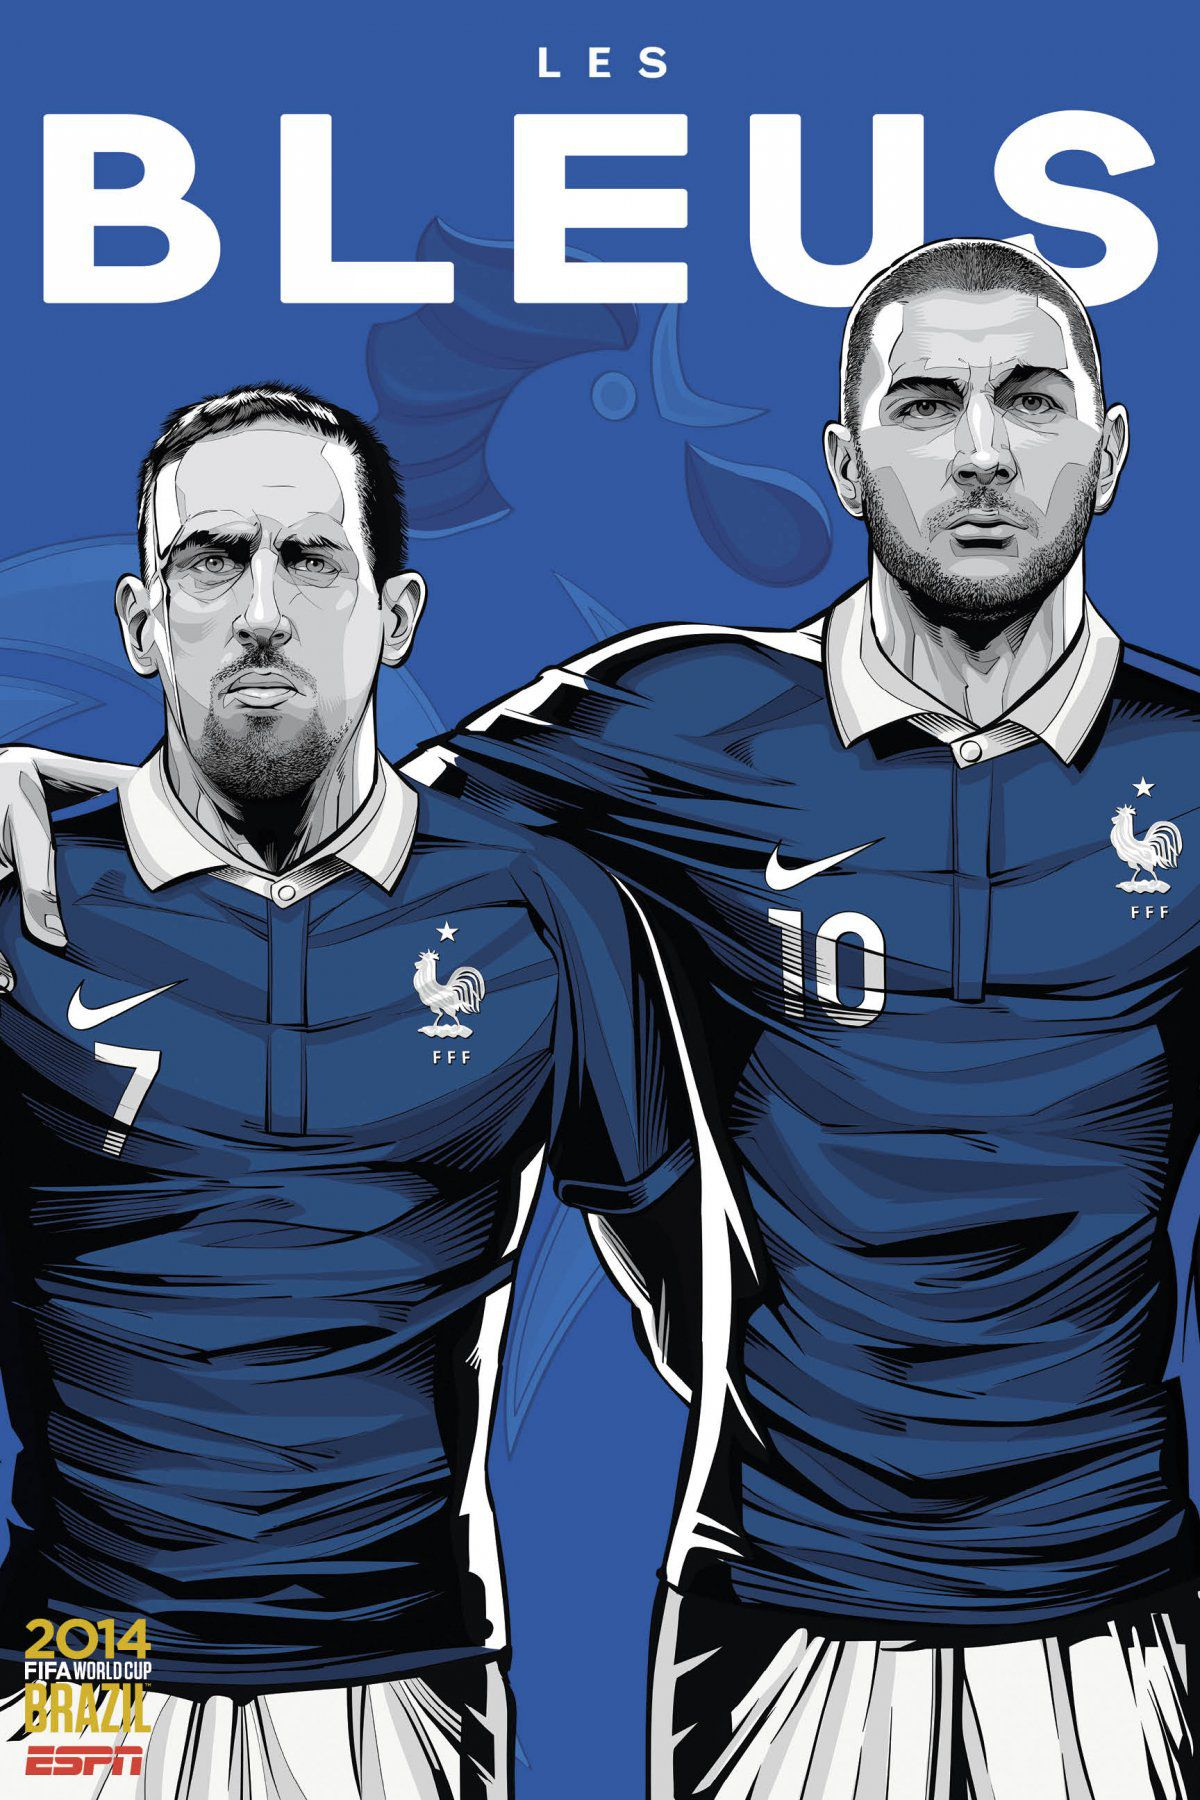 ESPN poster world cup brazil 2014 of France